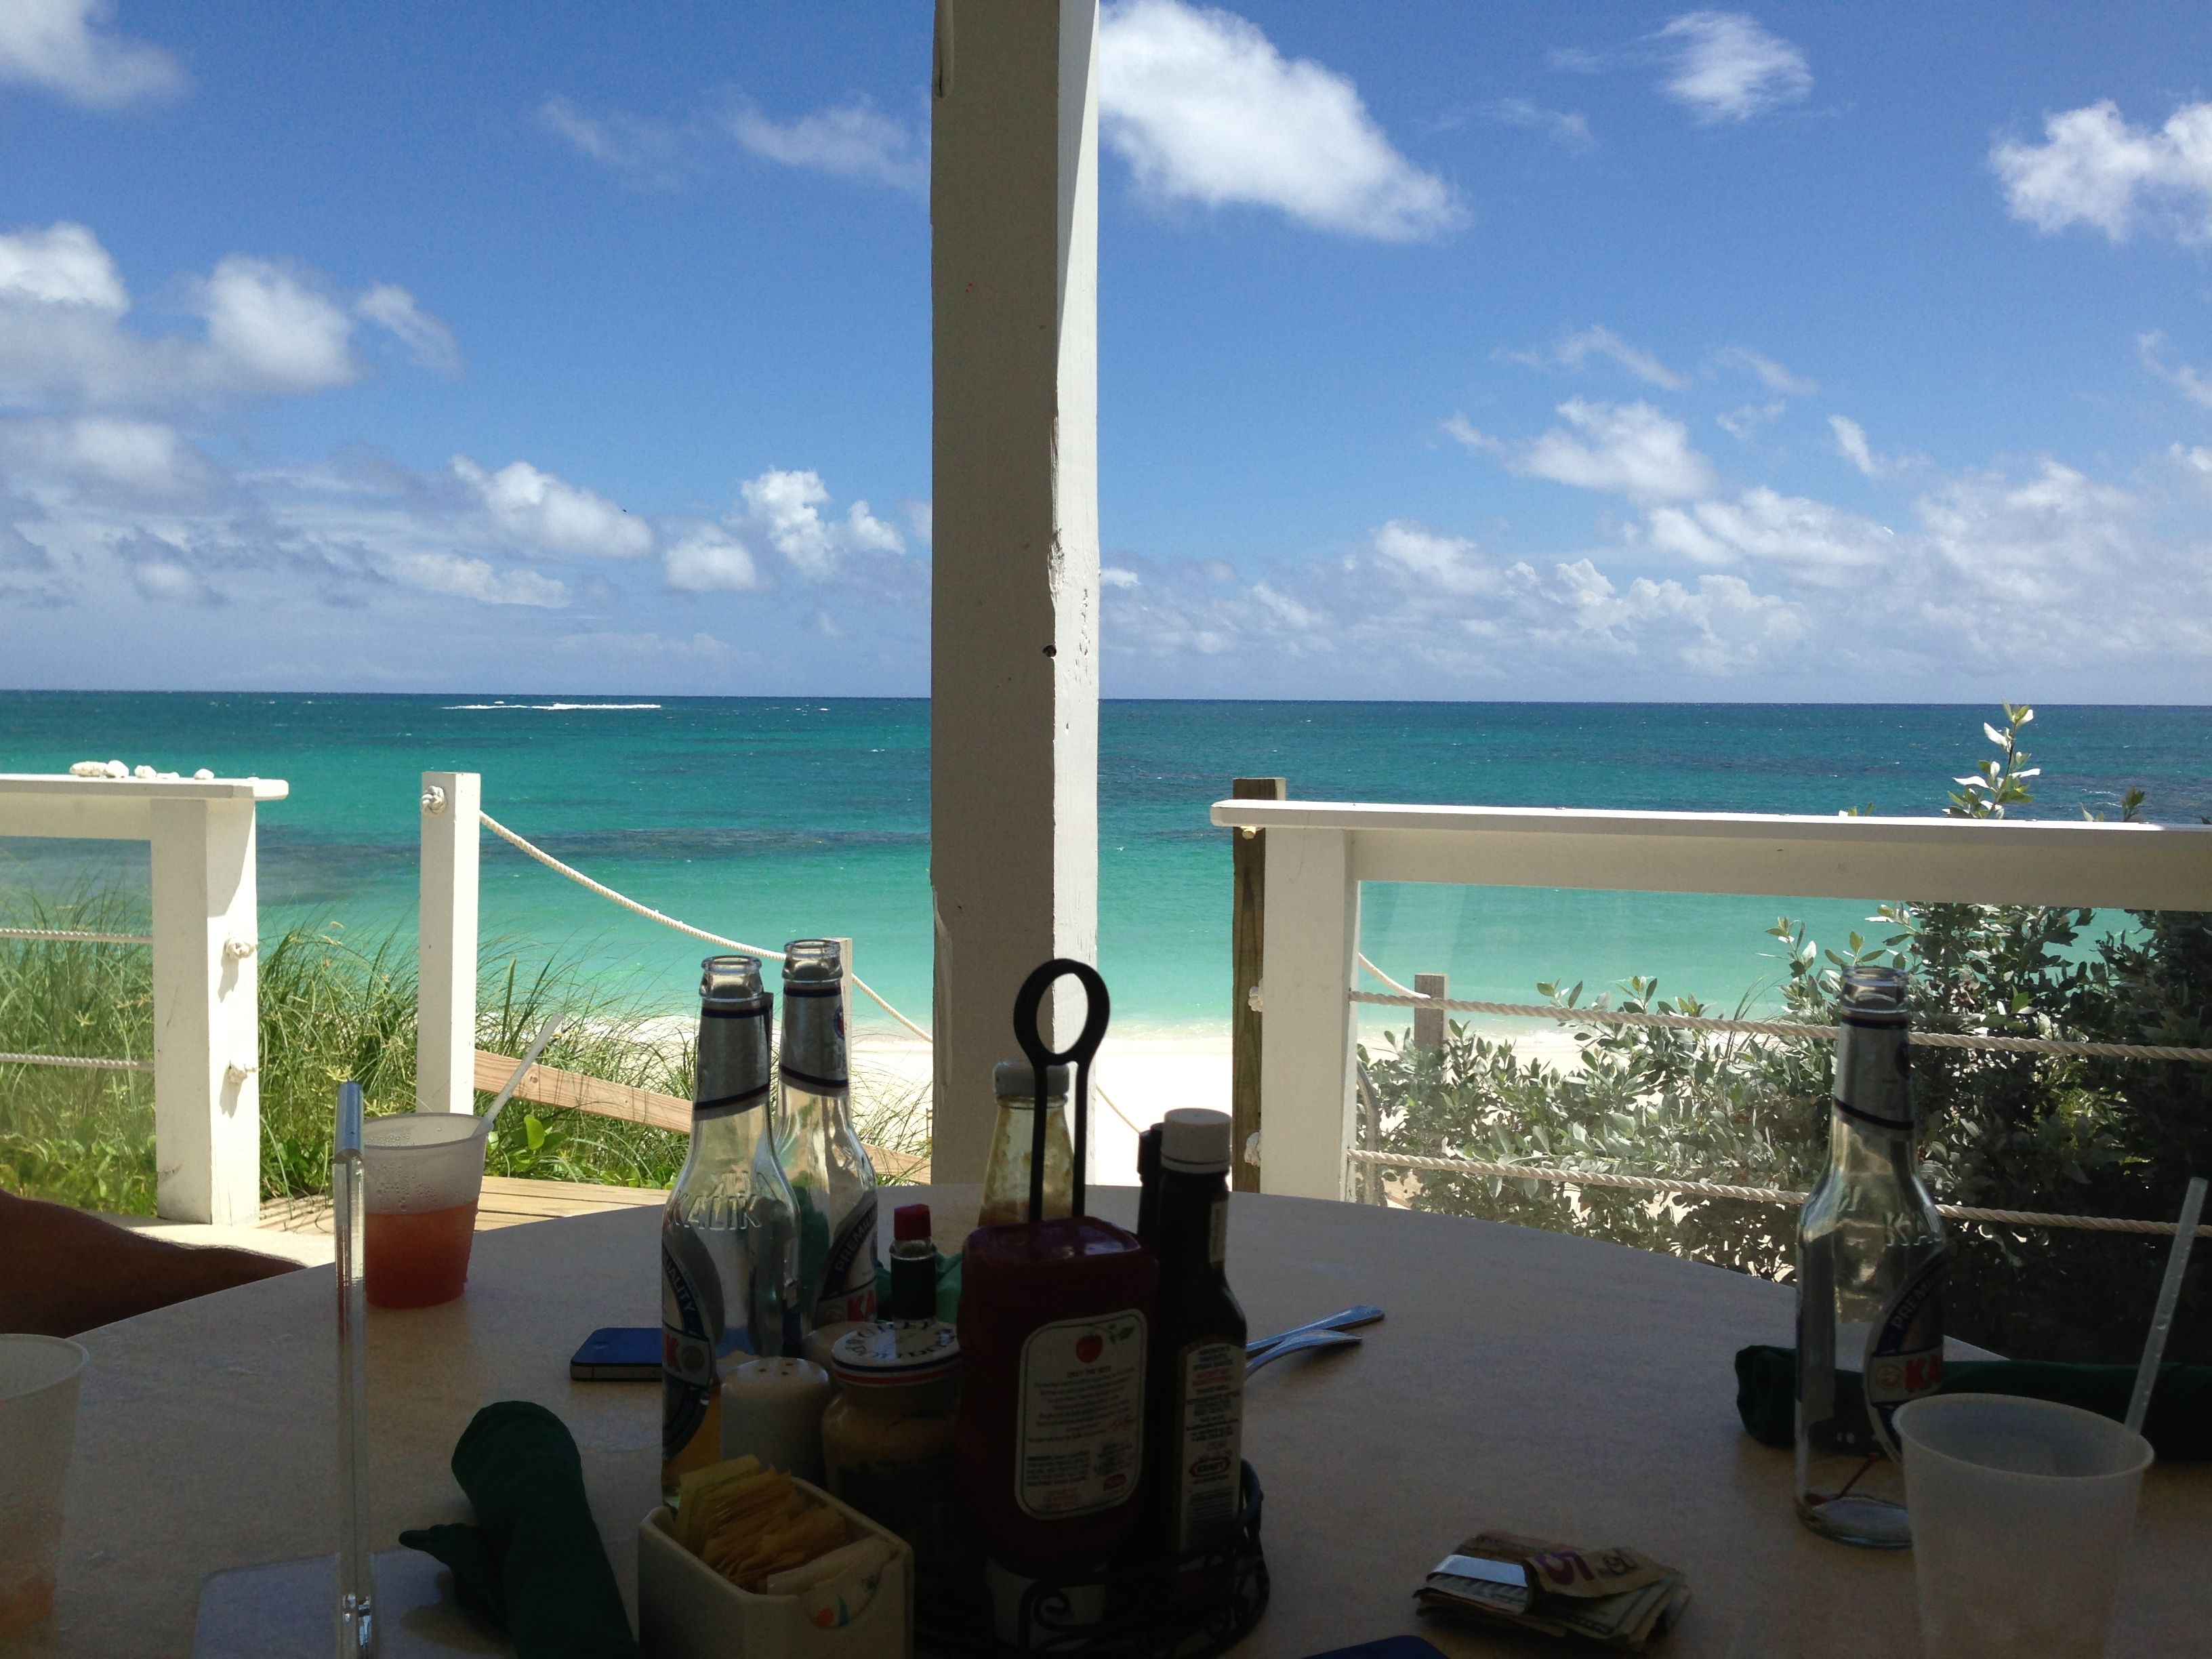 Places To See & Things To Do In the Abacos Bahamas : Our 5 Days In the Abacos